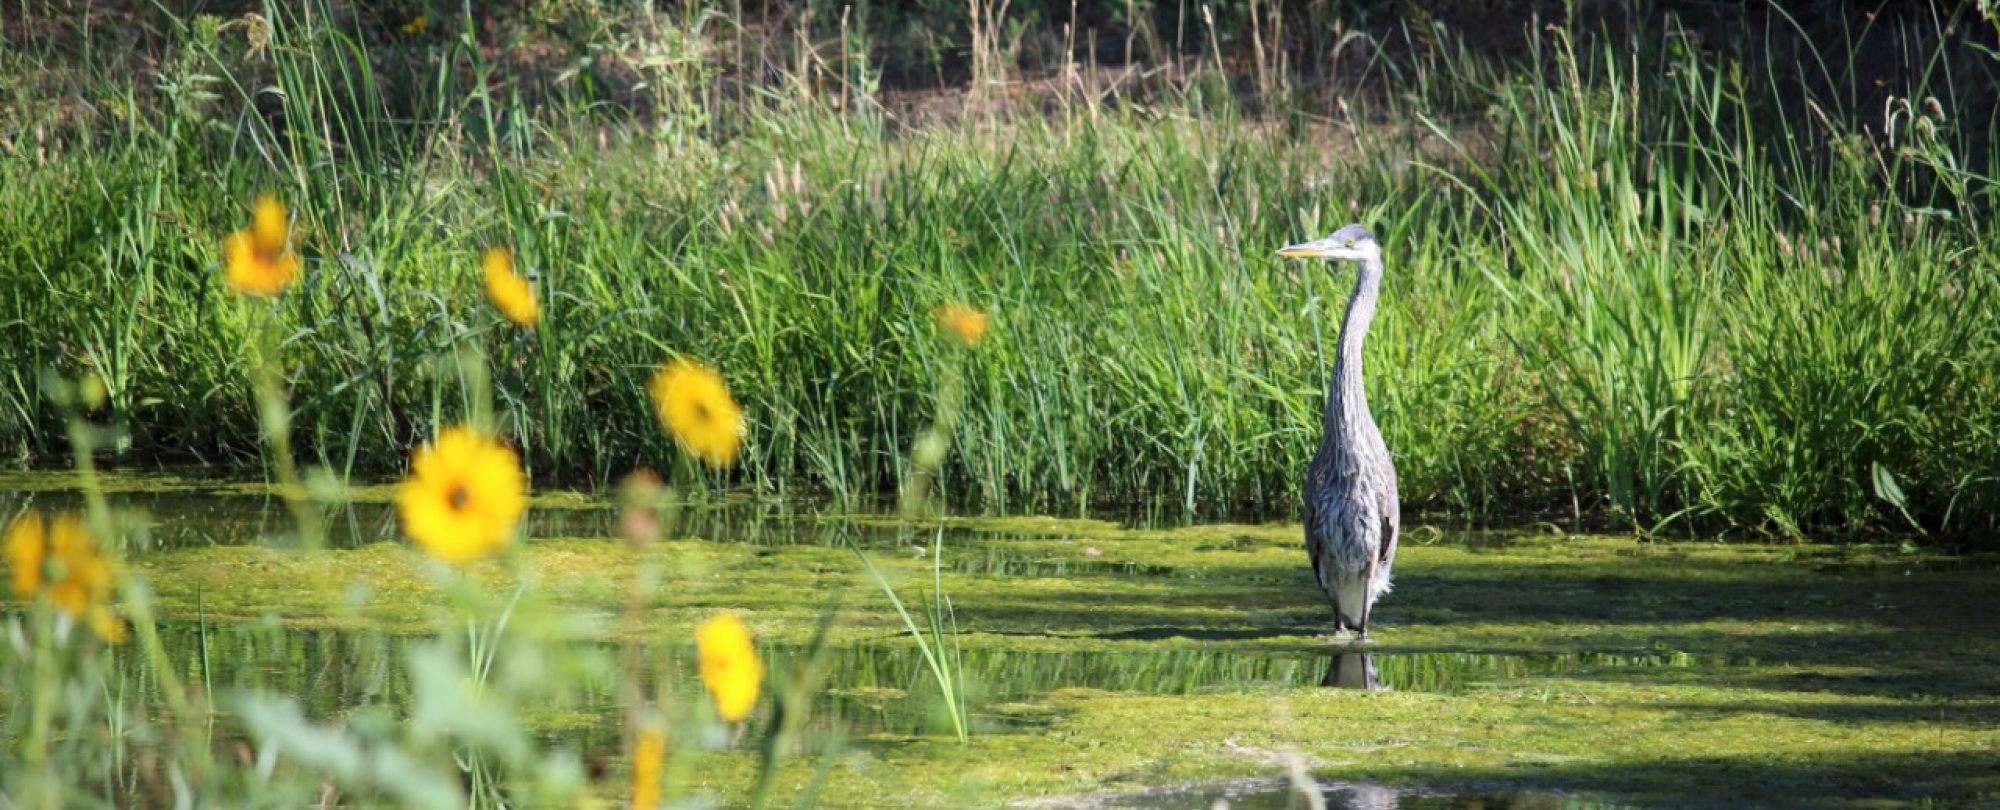 Blue Heron wading in the water in a designated Open Space